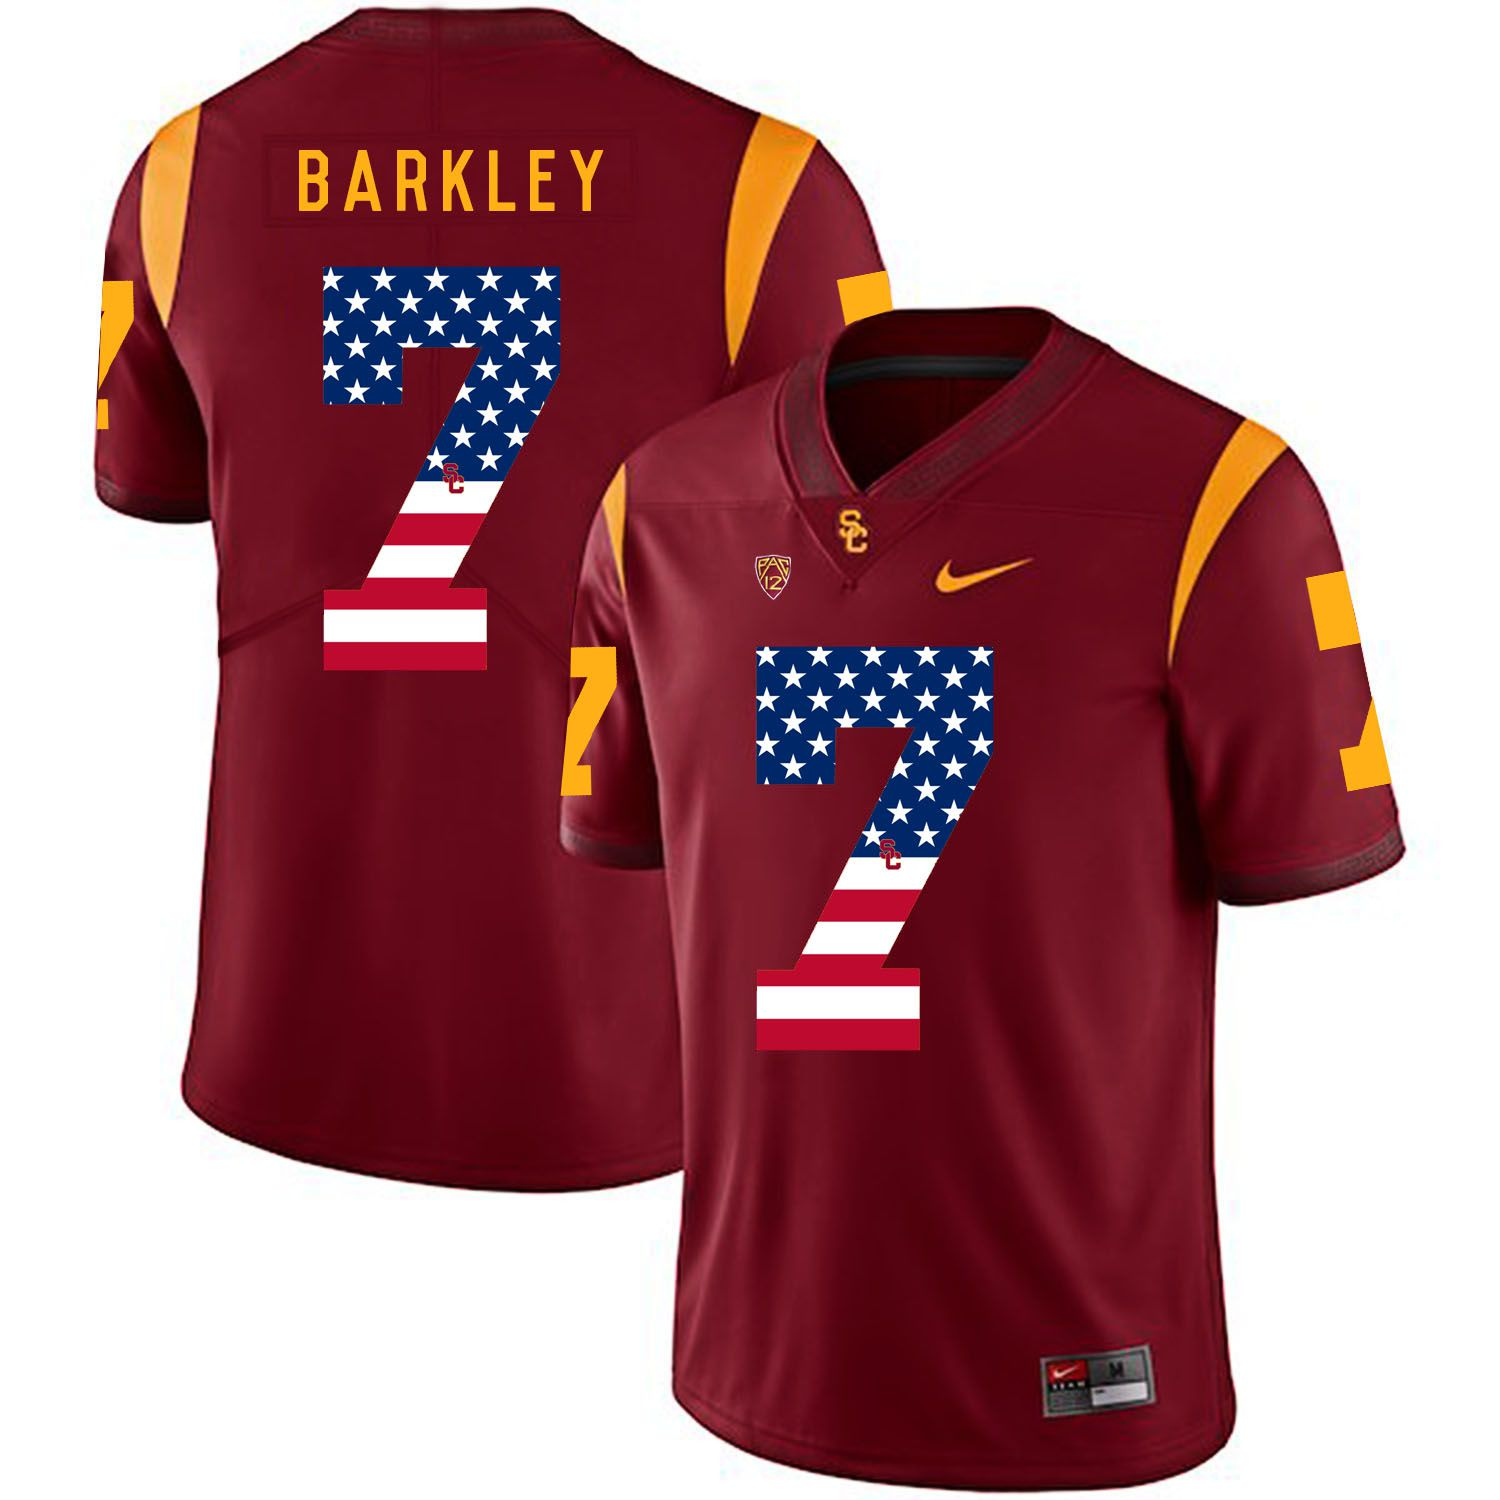 Men USC Trojans 7 Barkley Red Flag Customized NCAA Jerseys